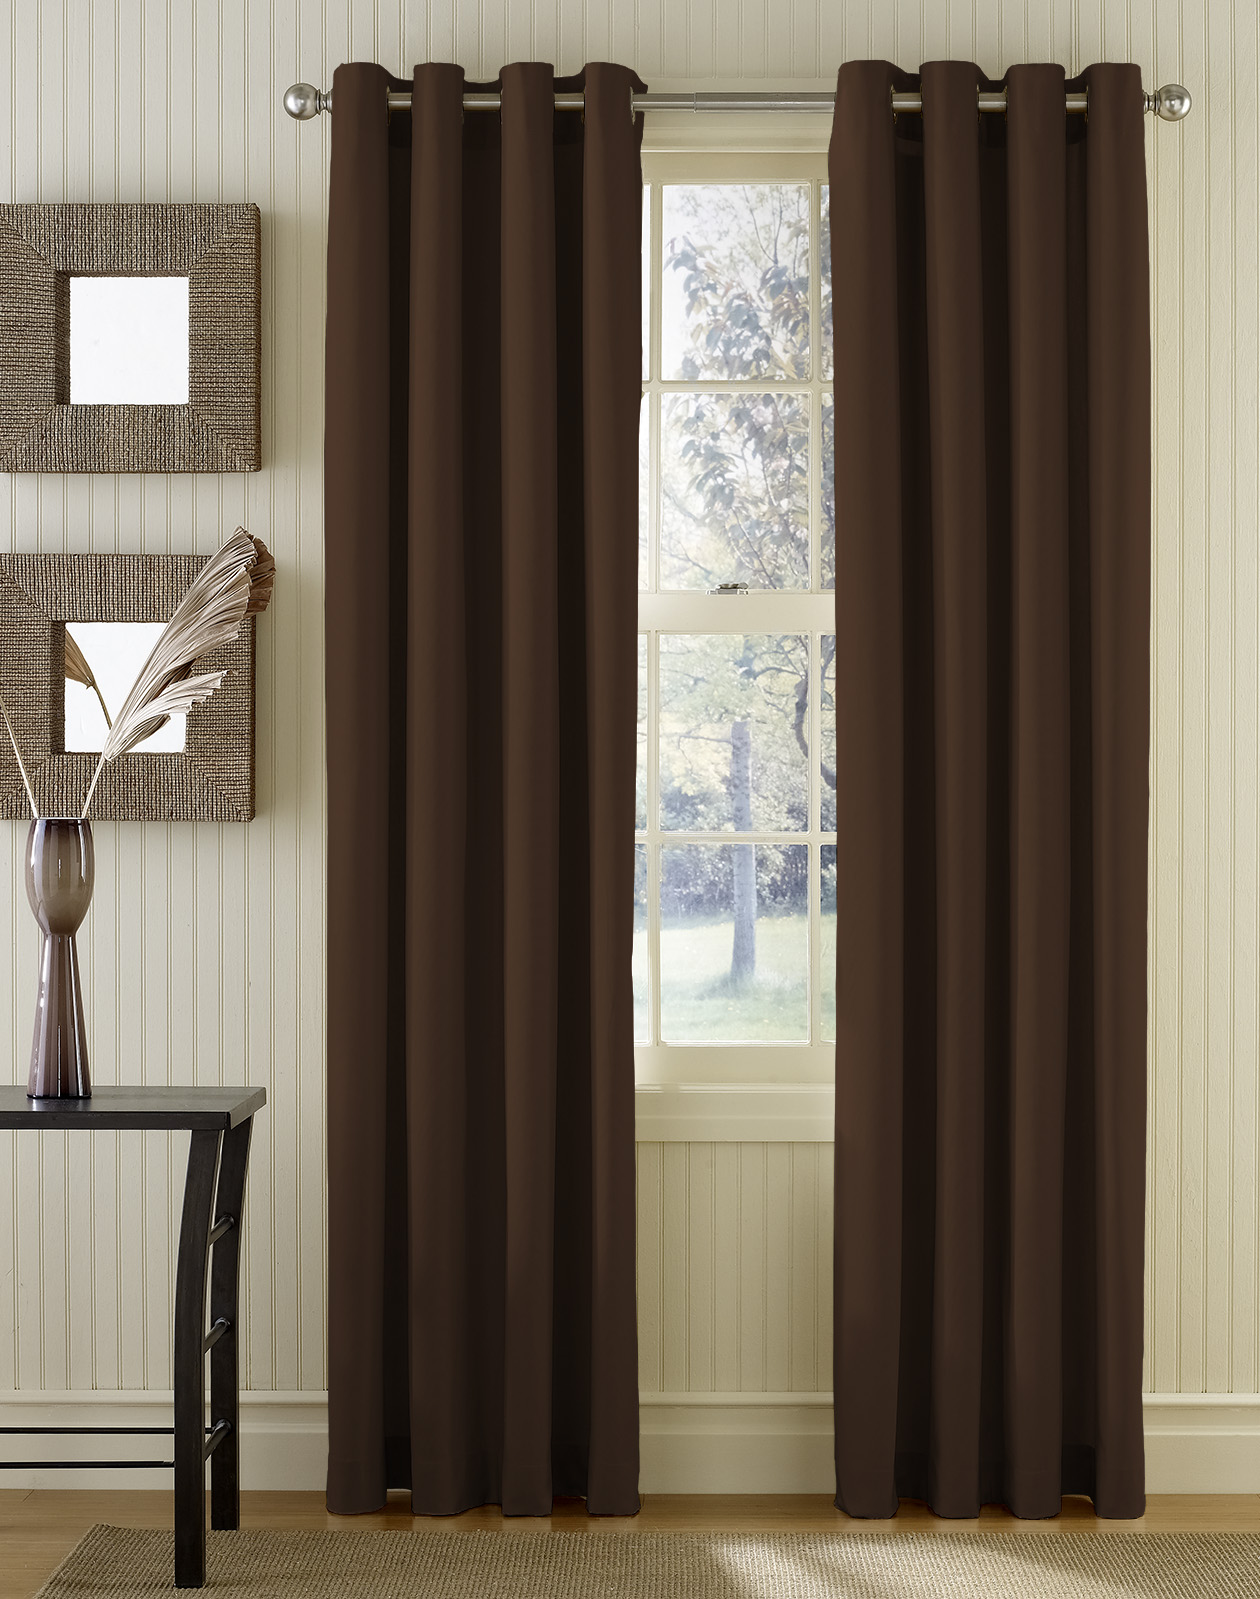 Curtain interior design what is minimalist curtain design for Curtains and drapes for bedroom ideas